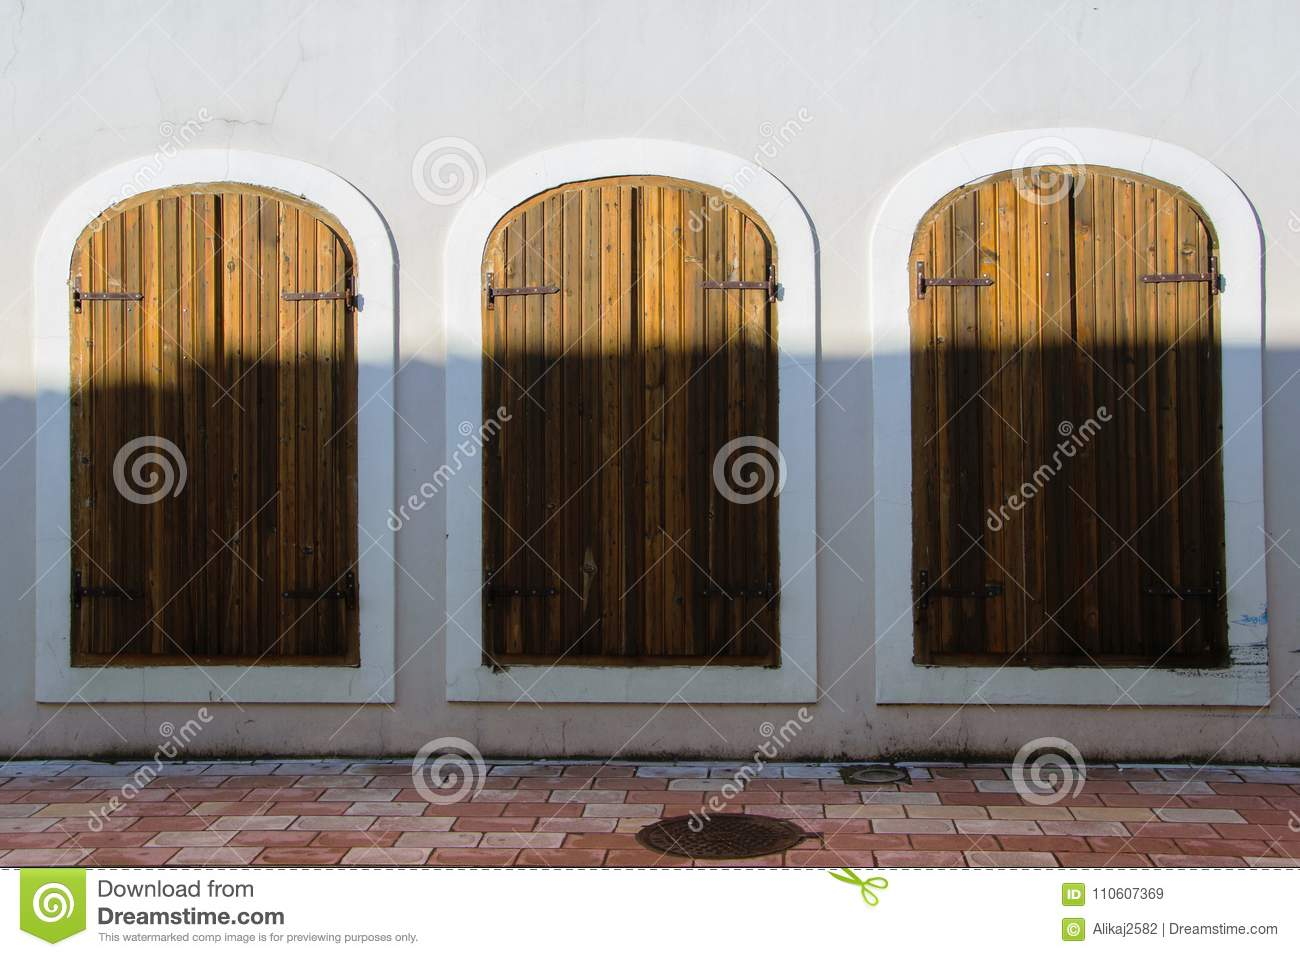 Download Three Equal Antique Windows-doors, Concept - Make Your Choice With  Different Outputs - Three Equal Antique Windows-doors, Concept - Make Your Choice With